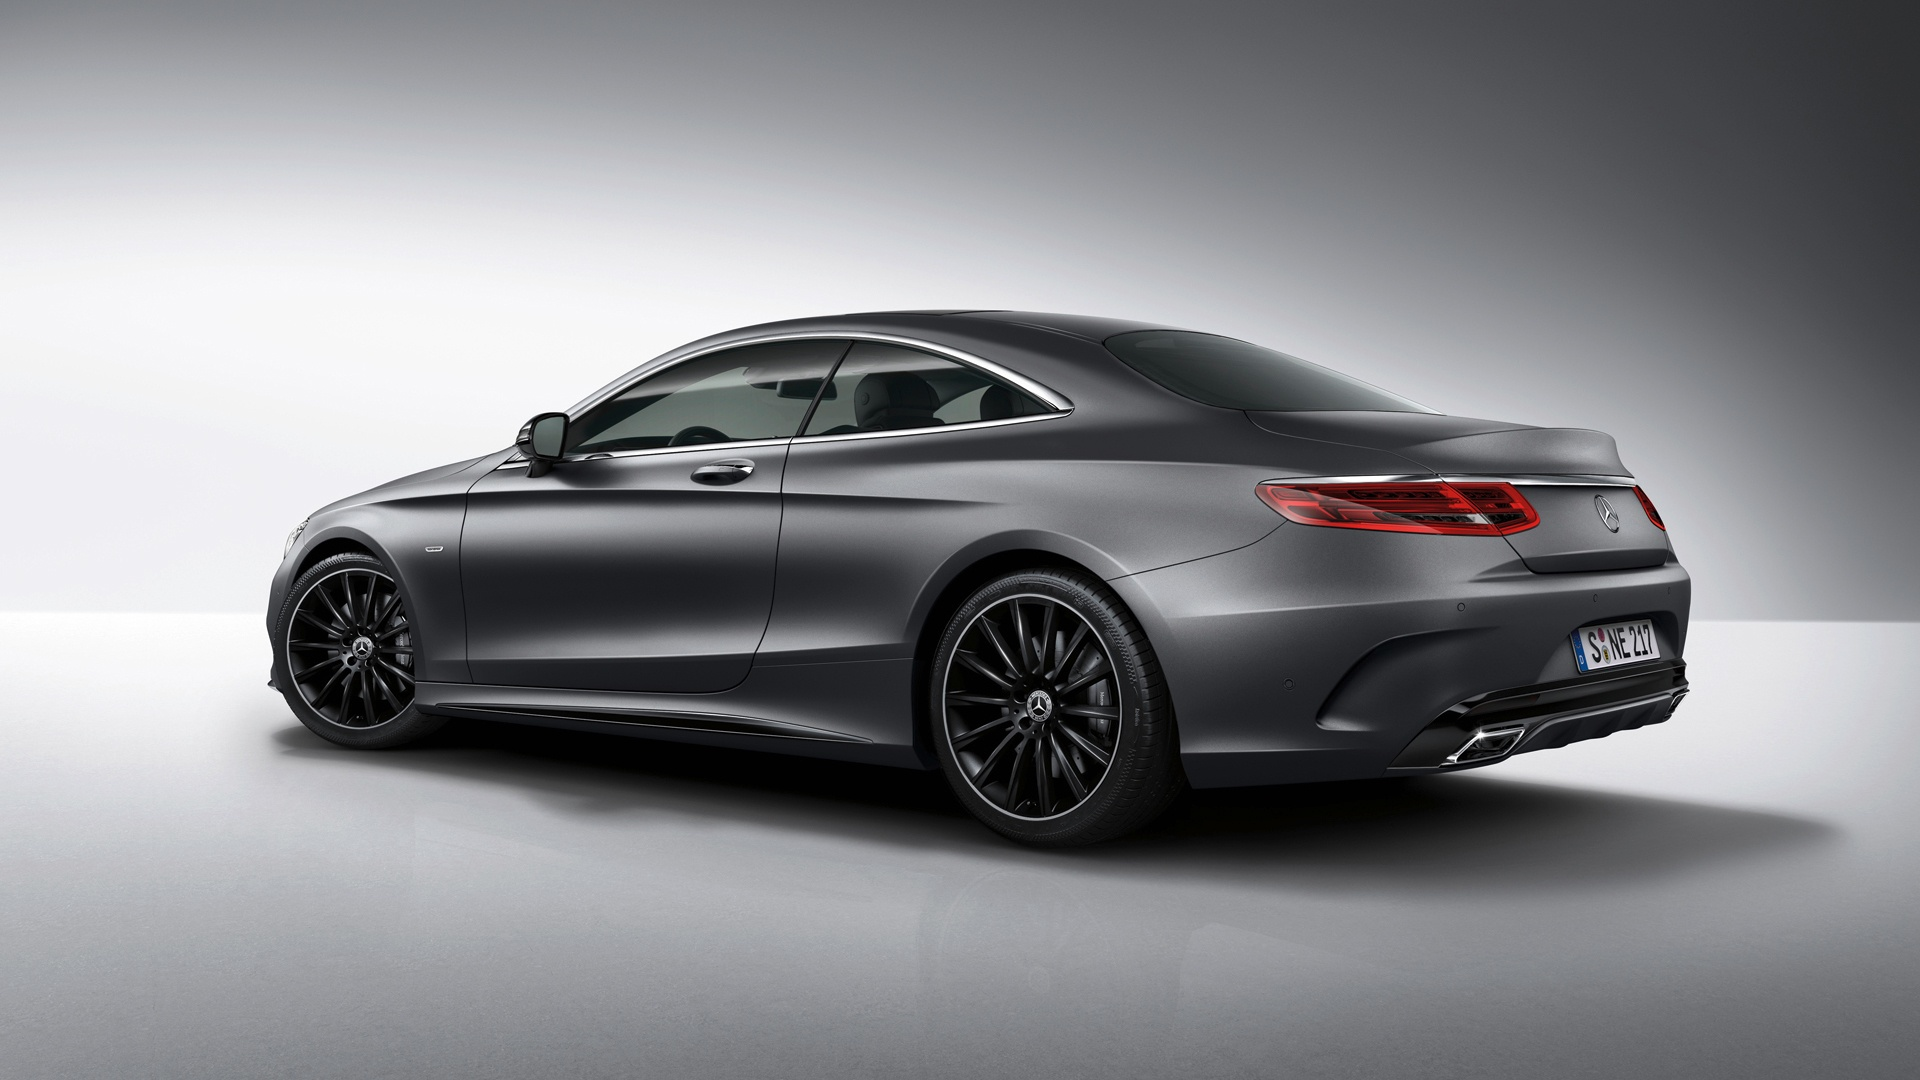 mercedes-s-class-coupe-night-edition-03-1